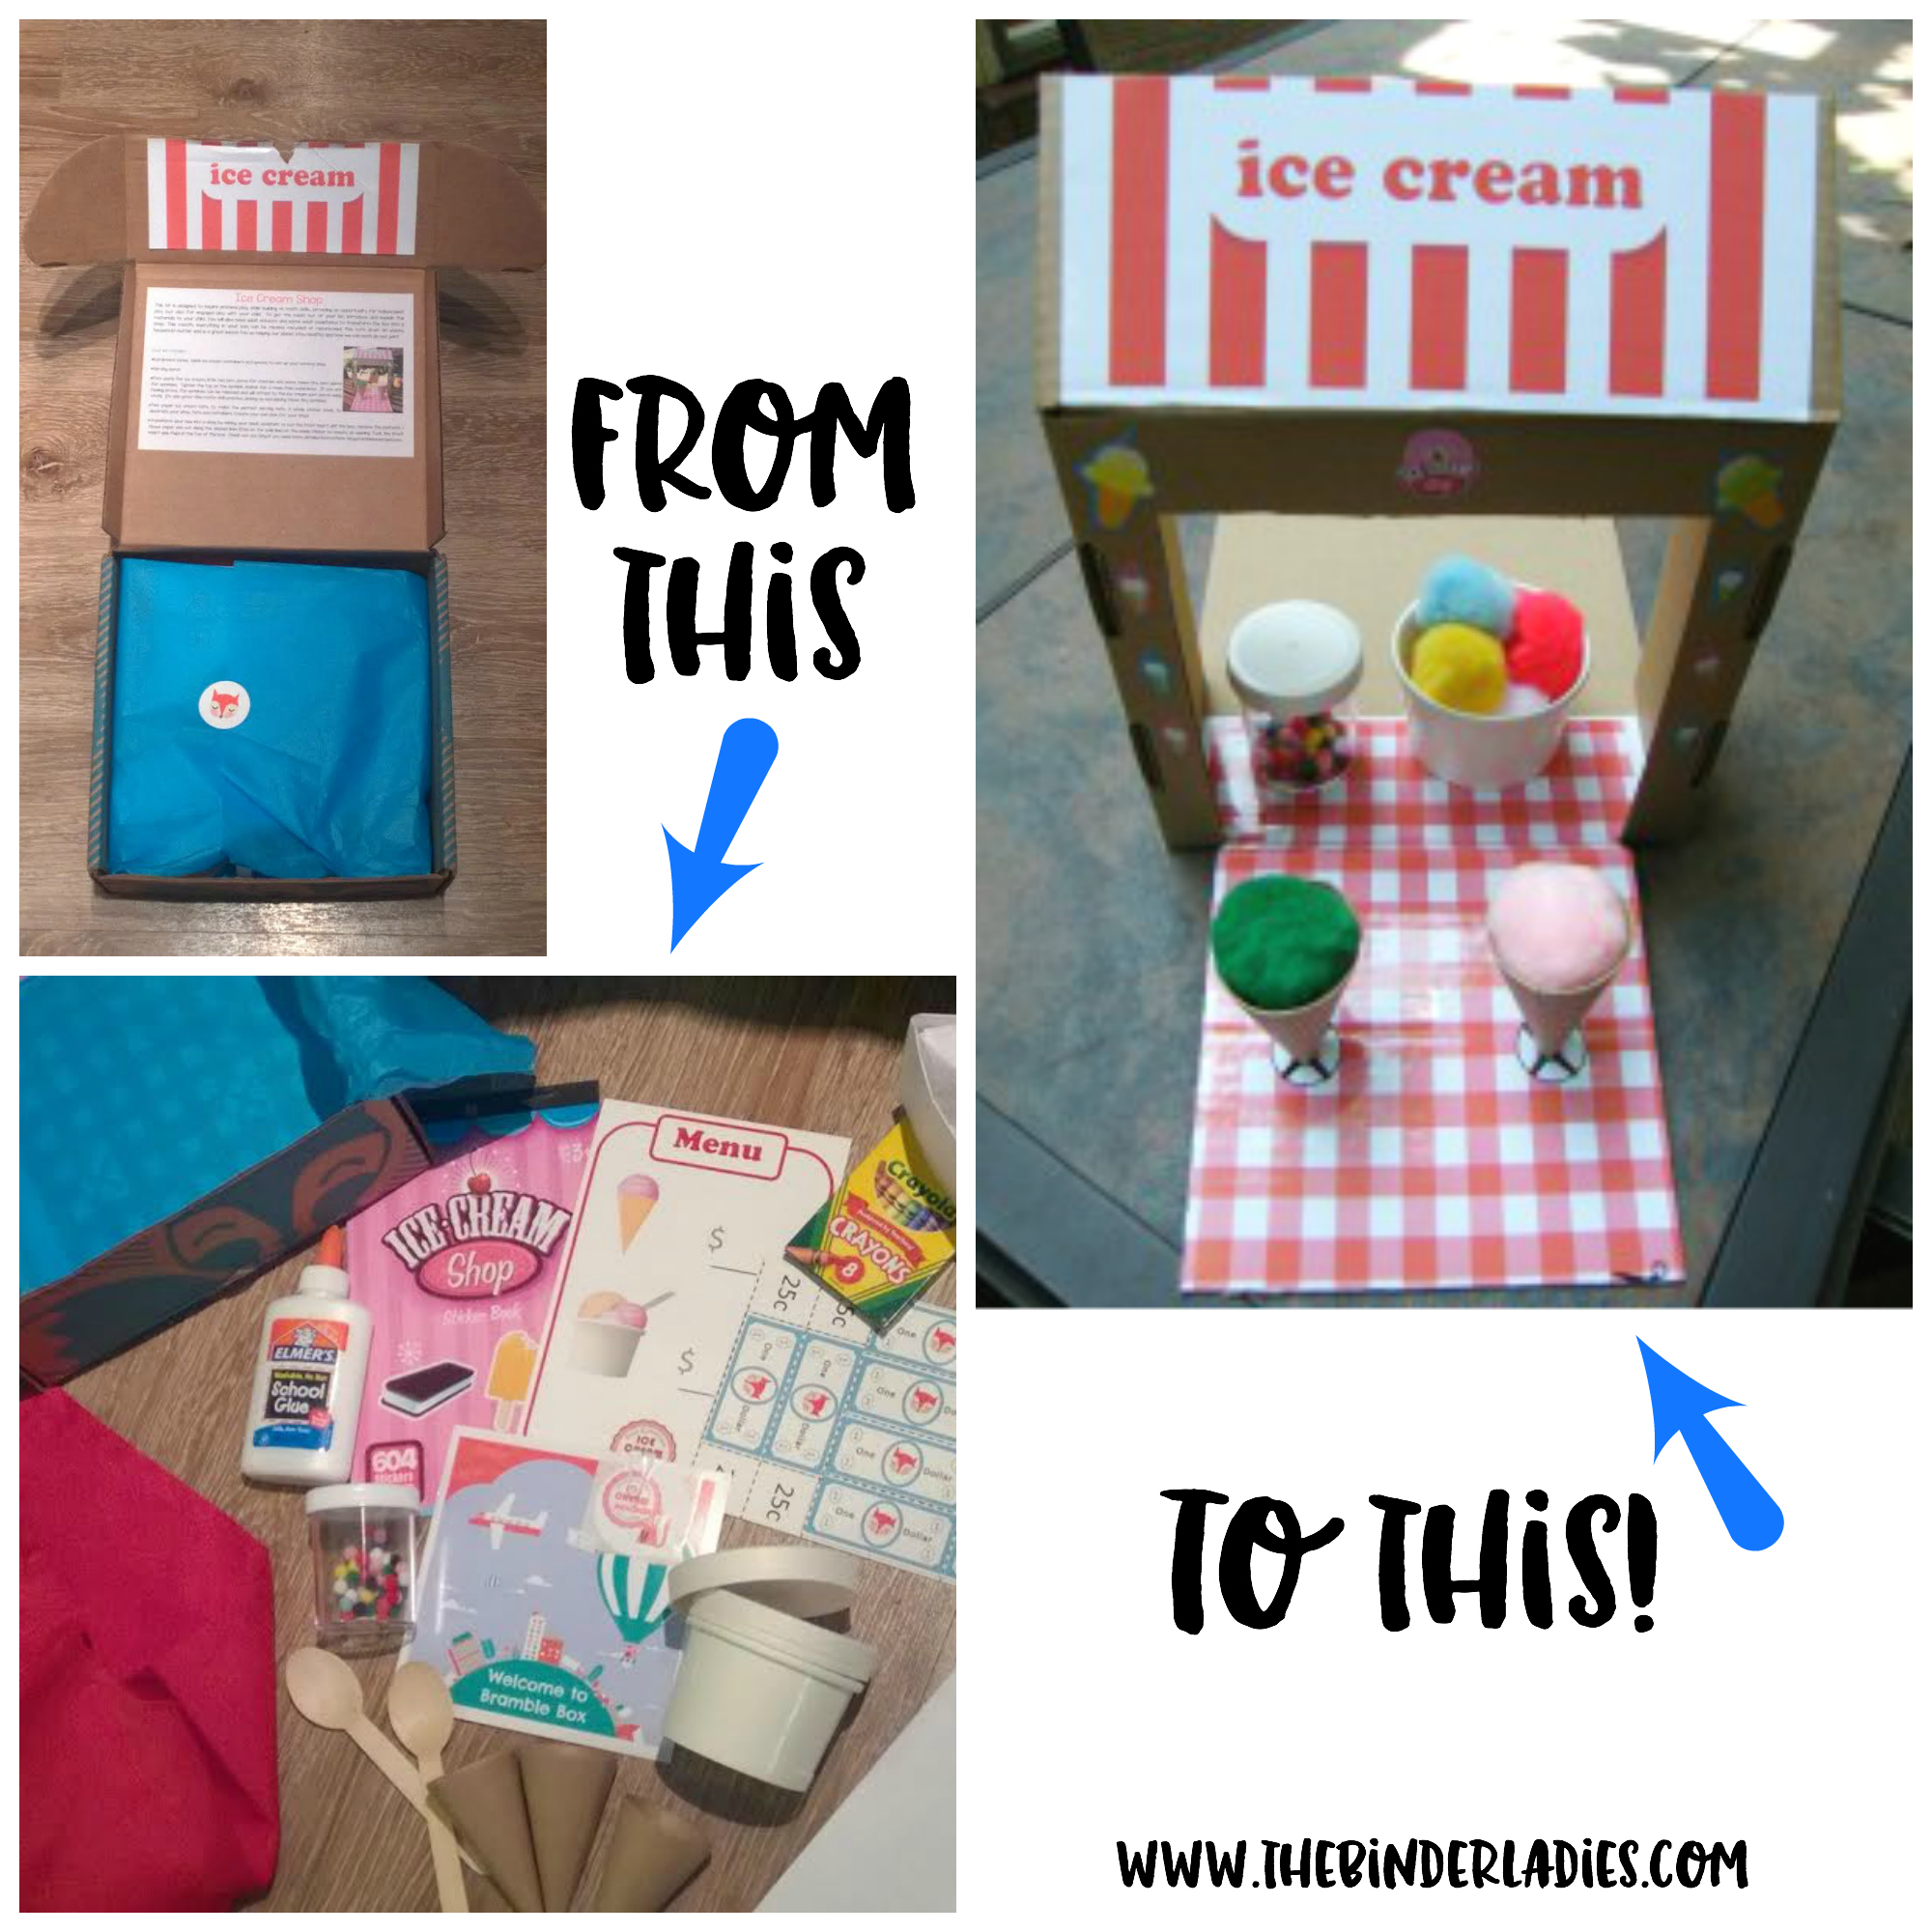 Bramble Box - inpsire creativity and imagination with these brilliant subscription boxes for kids!